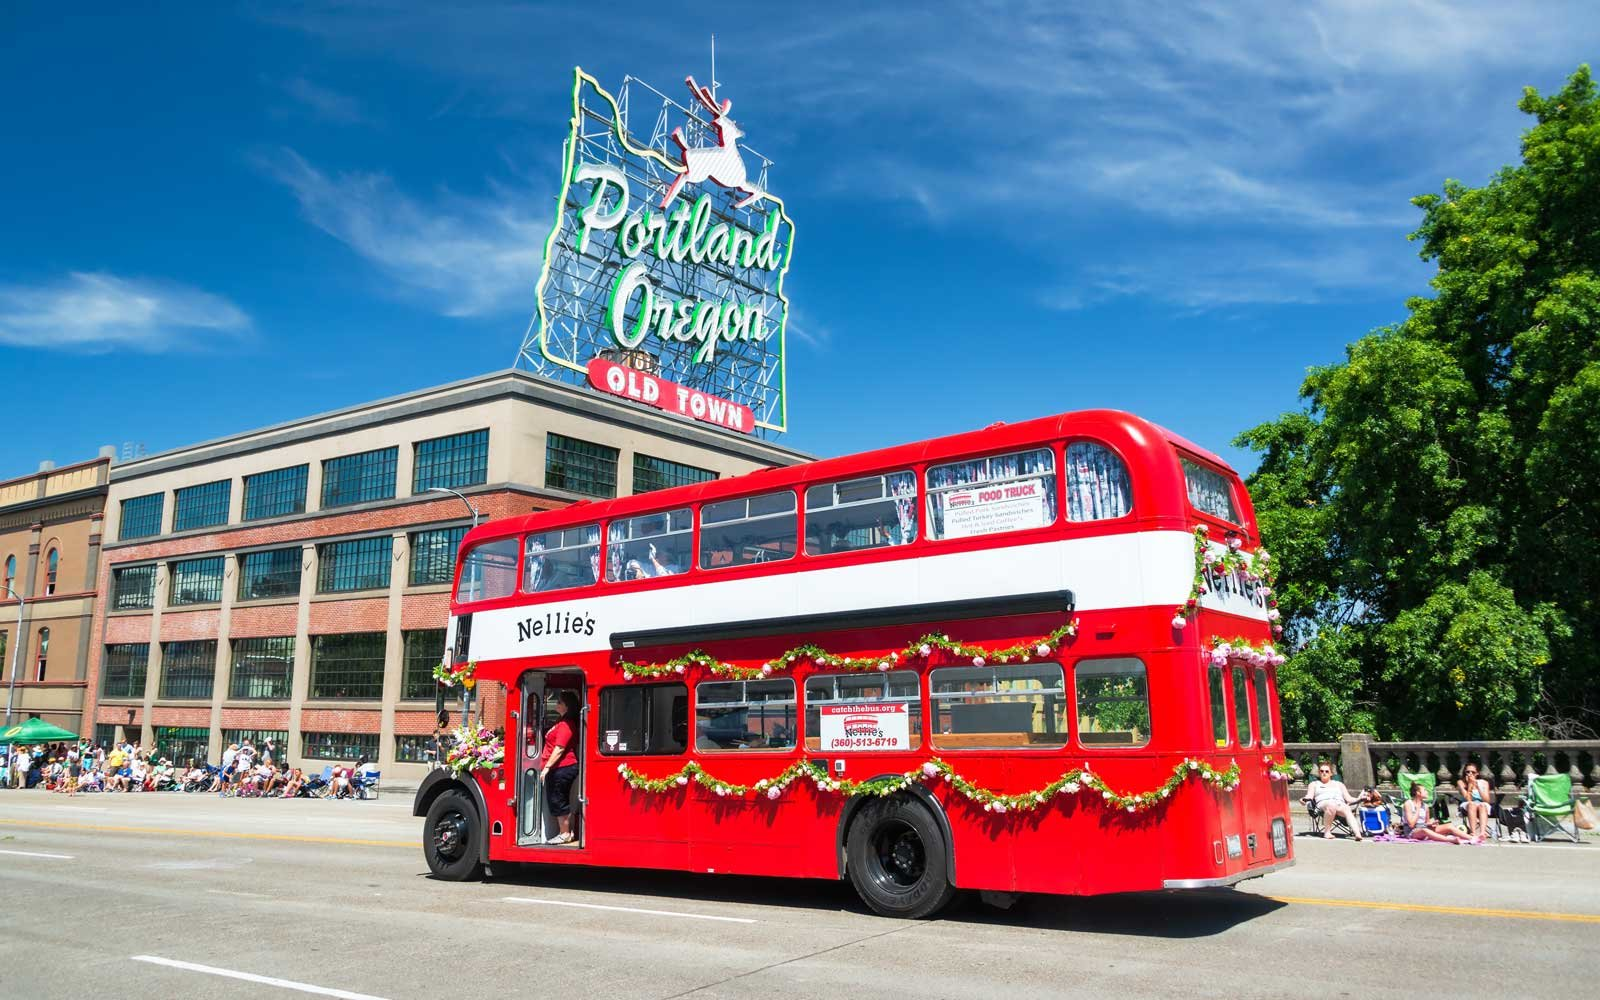 Portland, Oregon, USA - June 6, 2015: Red double decker bus passes as part of the Grand Floral Parade on June 6, 2015 in Portland, Oregon